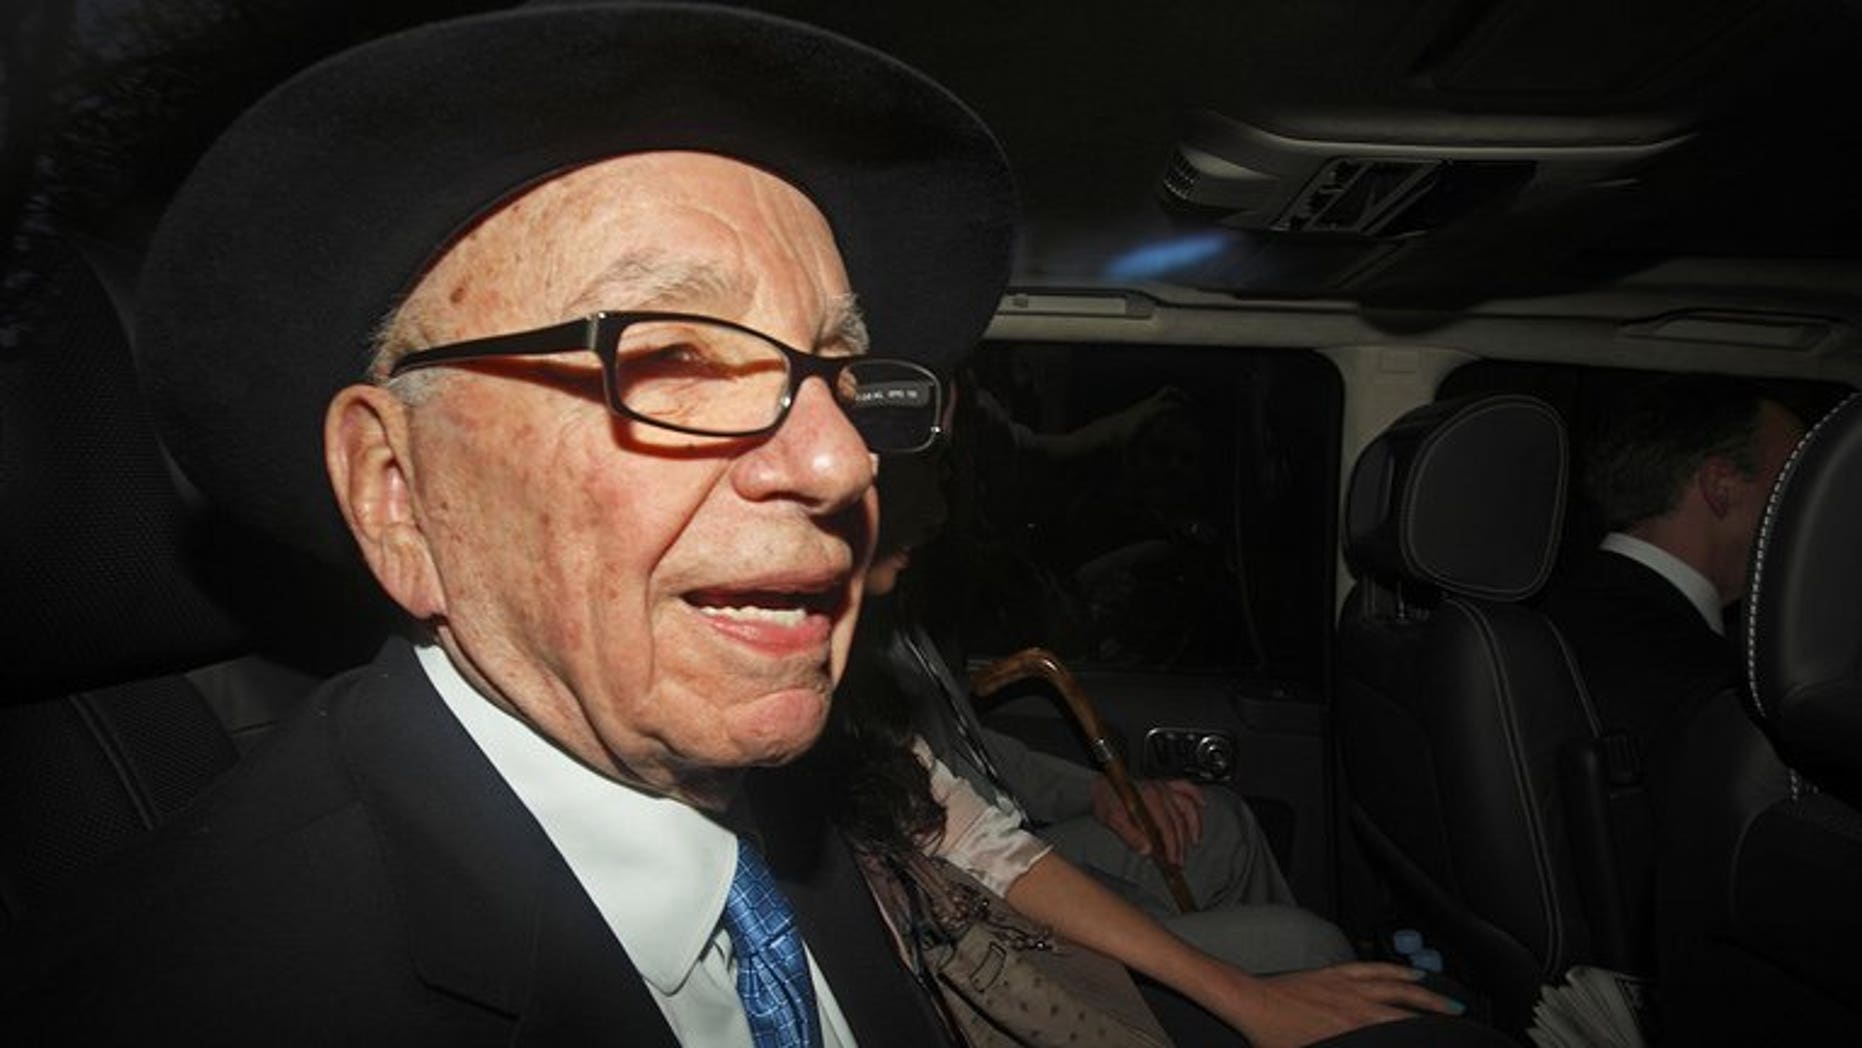 Rupert Murdoch is seen in a car in central London on April 26, 2012. MPs have recalled Murdoch to testify after a tape recording emerged of the media tycoon slamming the police investigation into alleged phone hacking and bribery by his journalists.